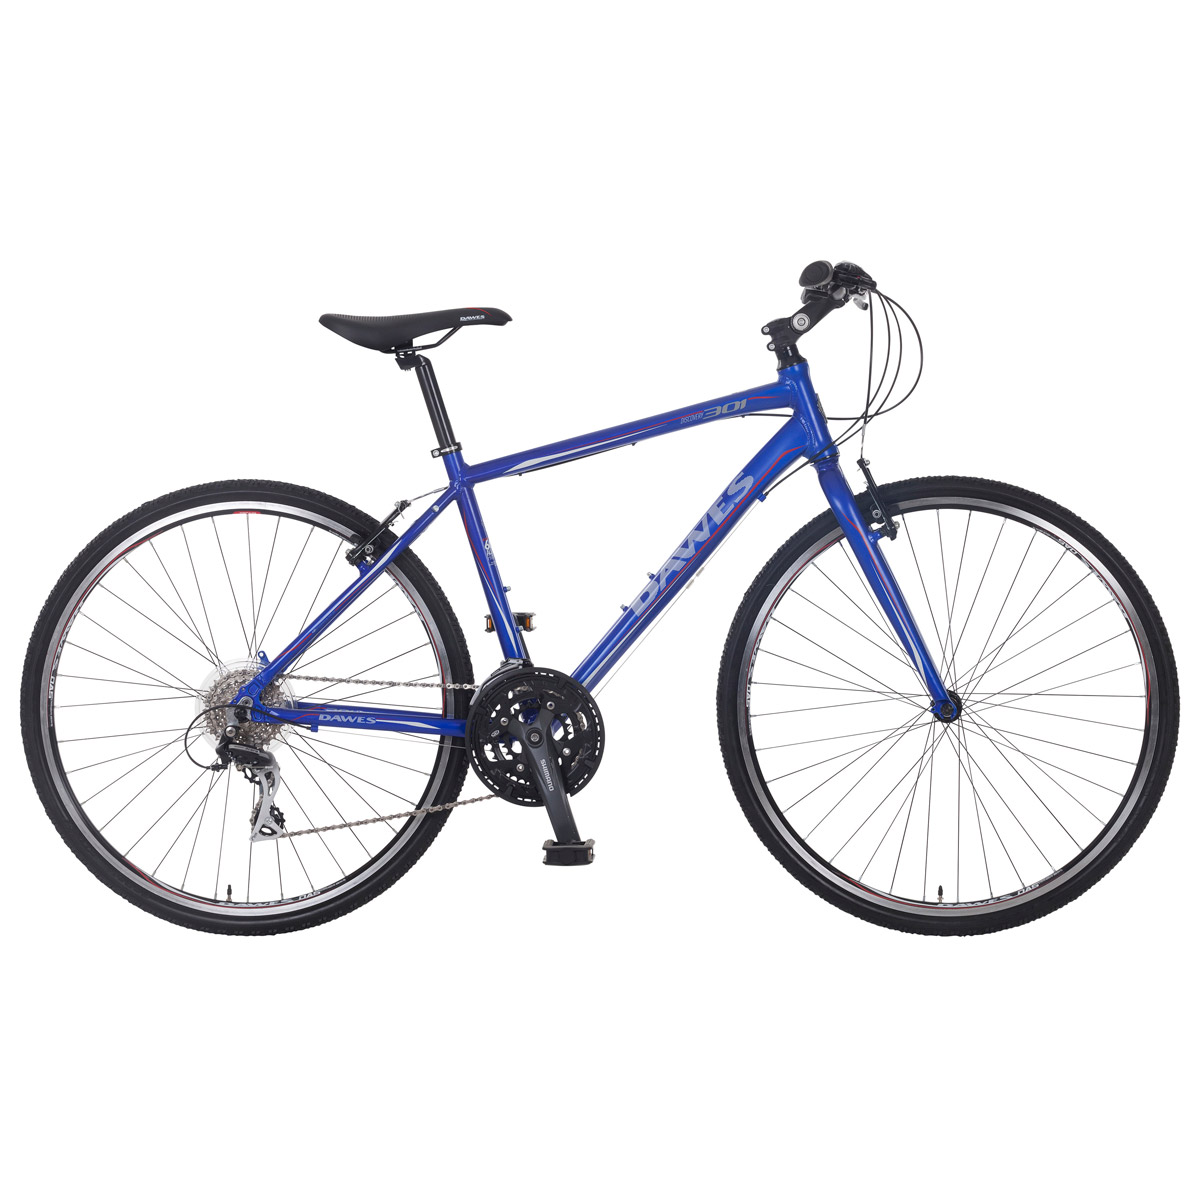 Dawes Discovery 301 Hybrid Bike – 10 – 15 Days Hire